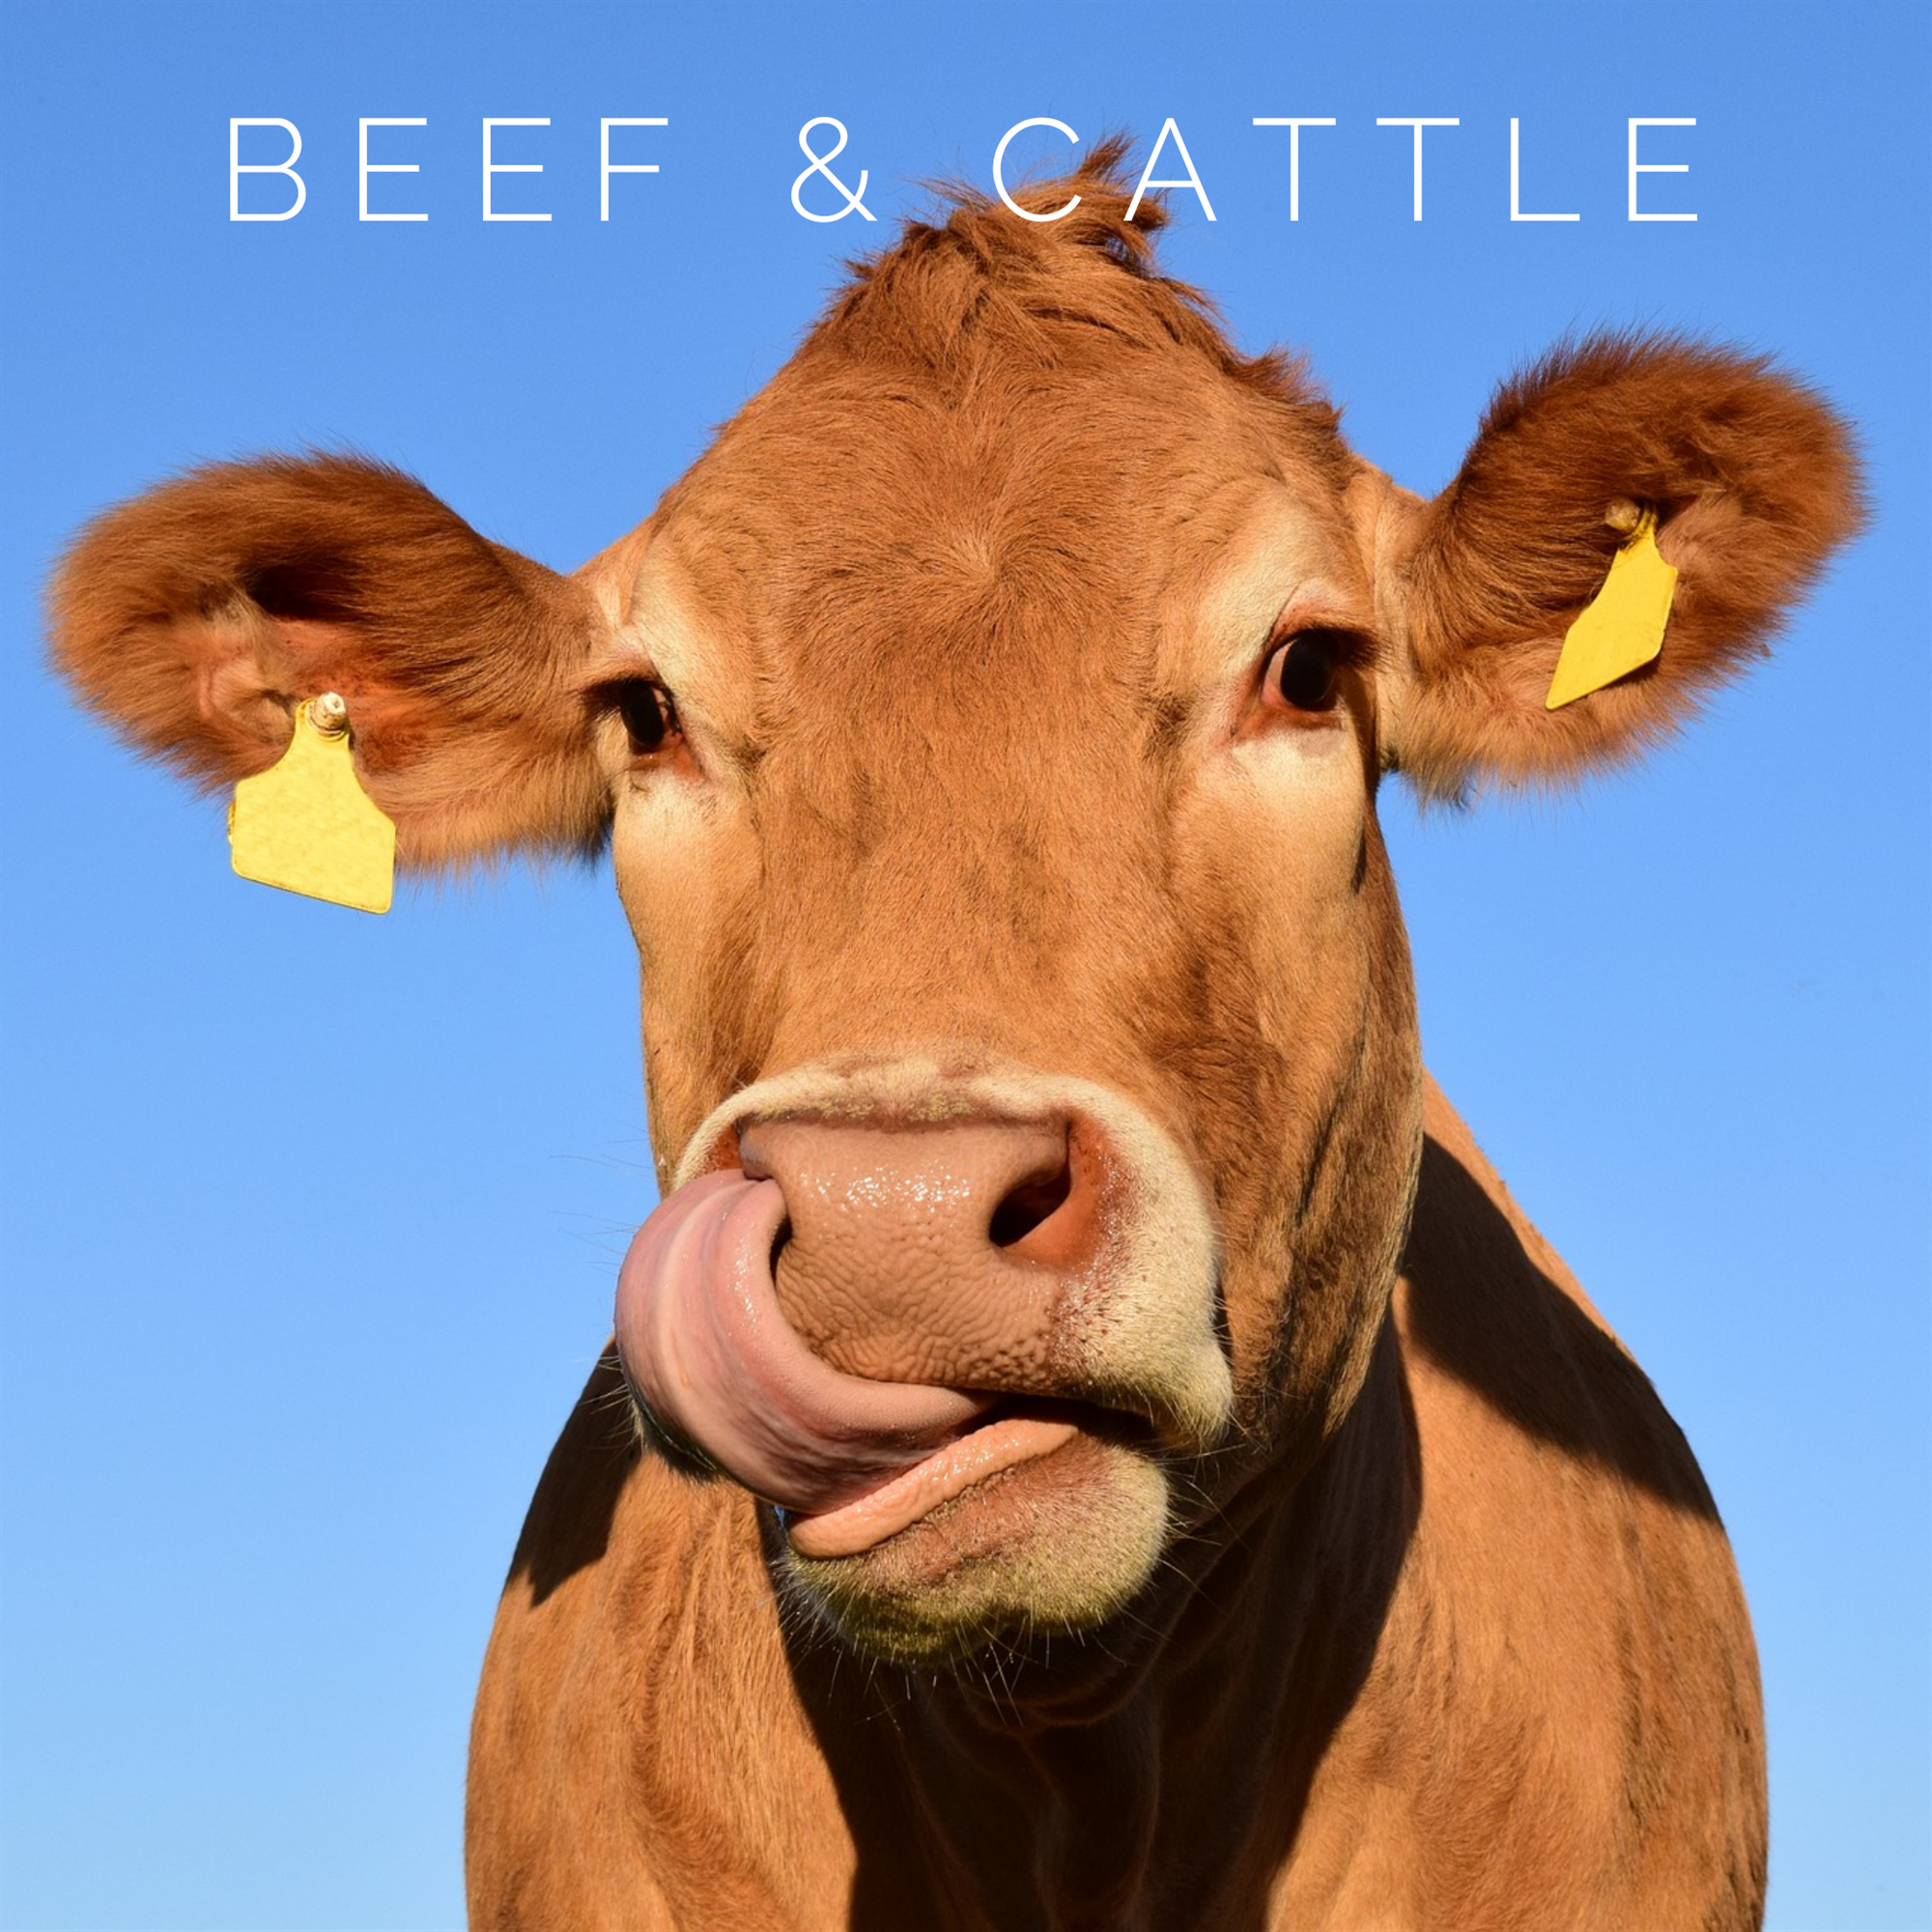 Beef & Cattle